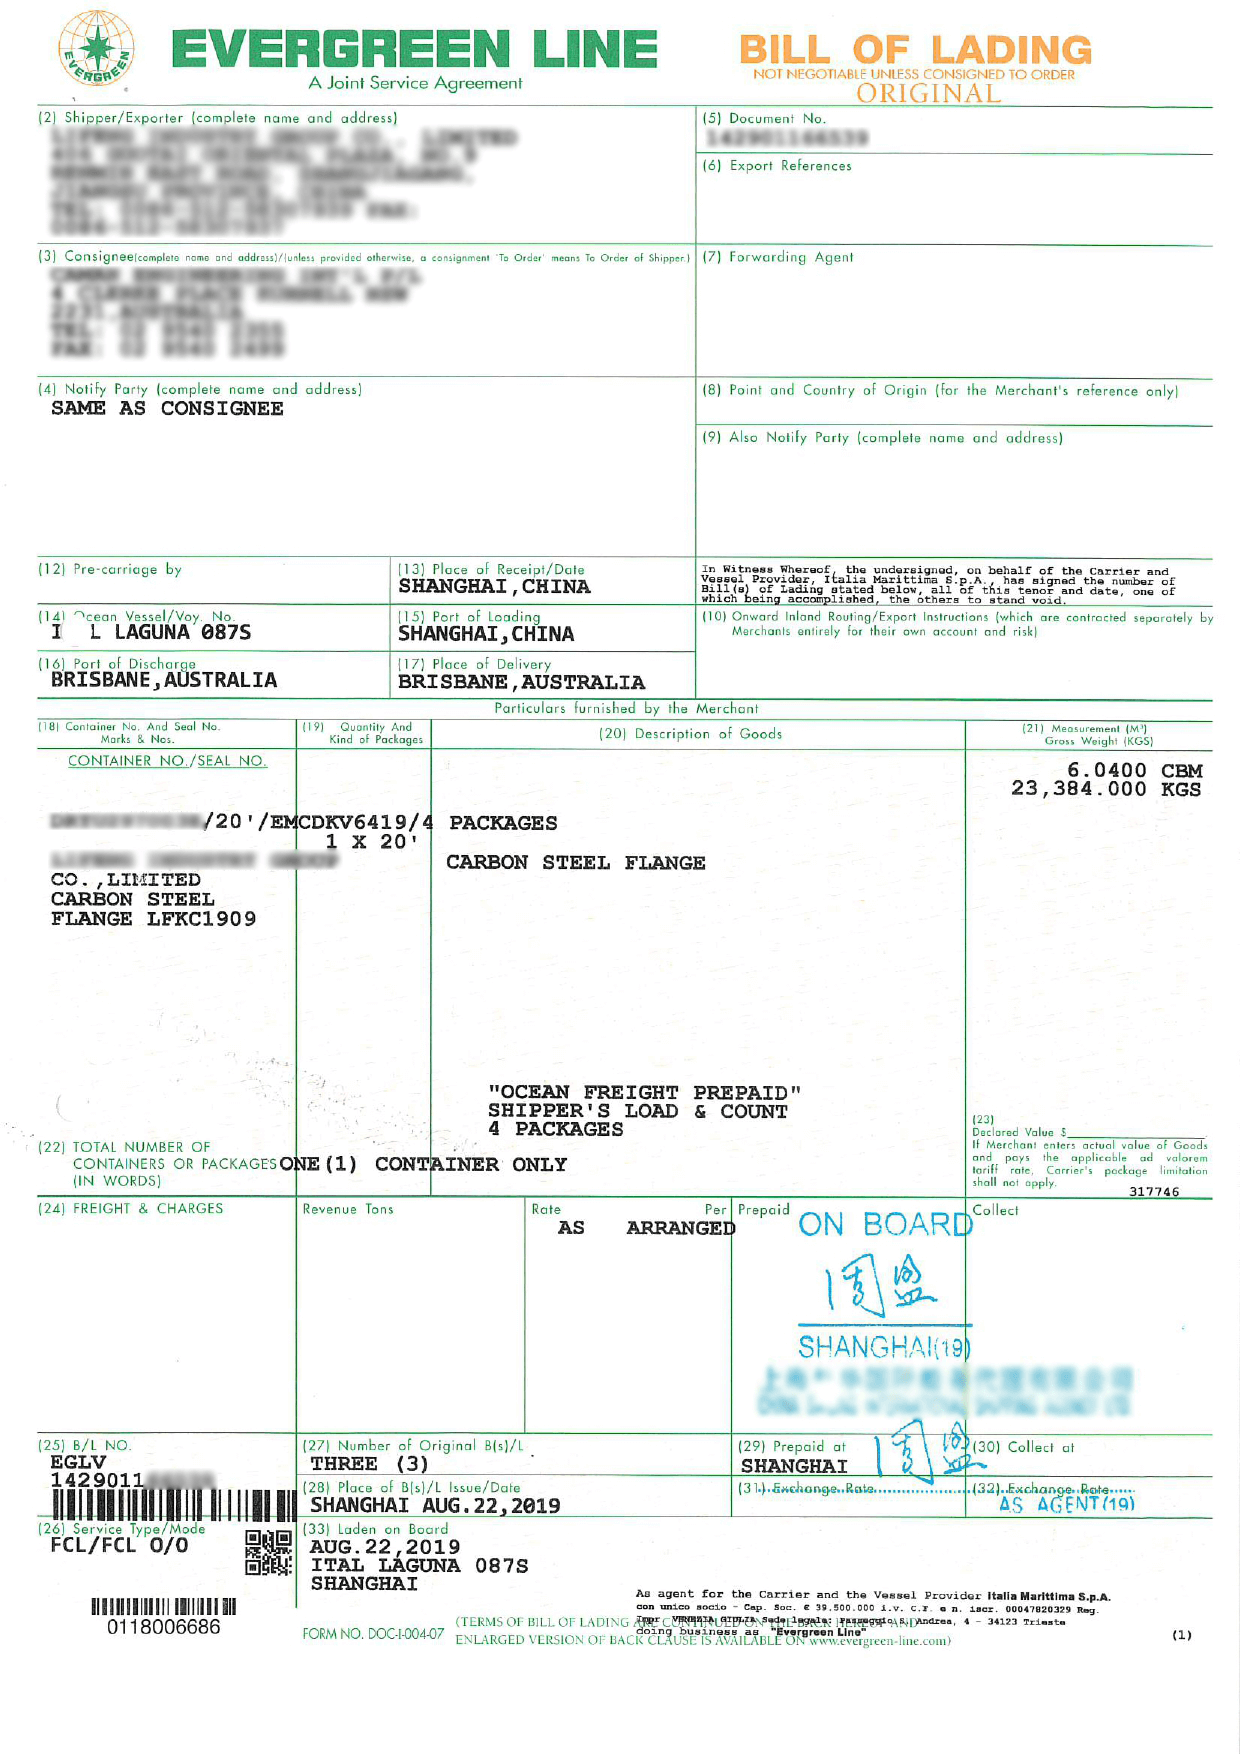 original-bill-of-lading-sample